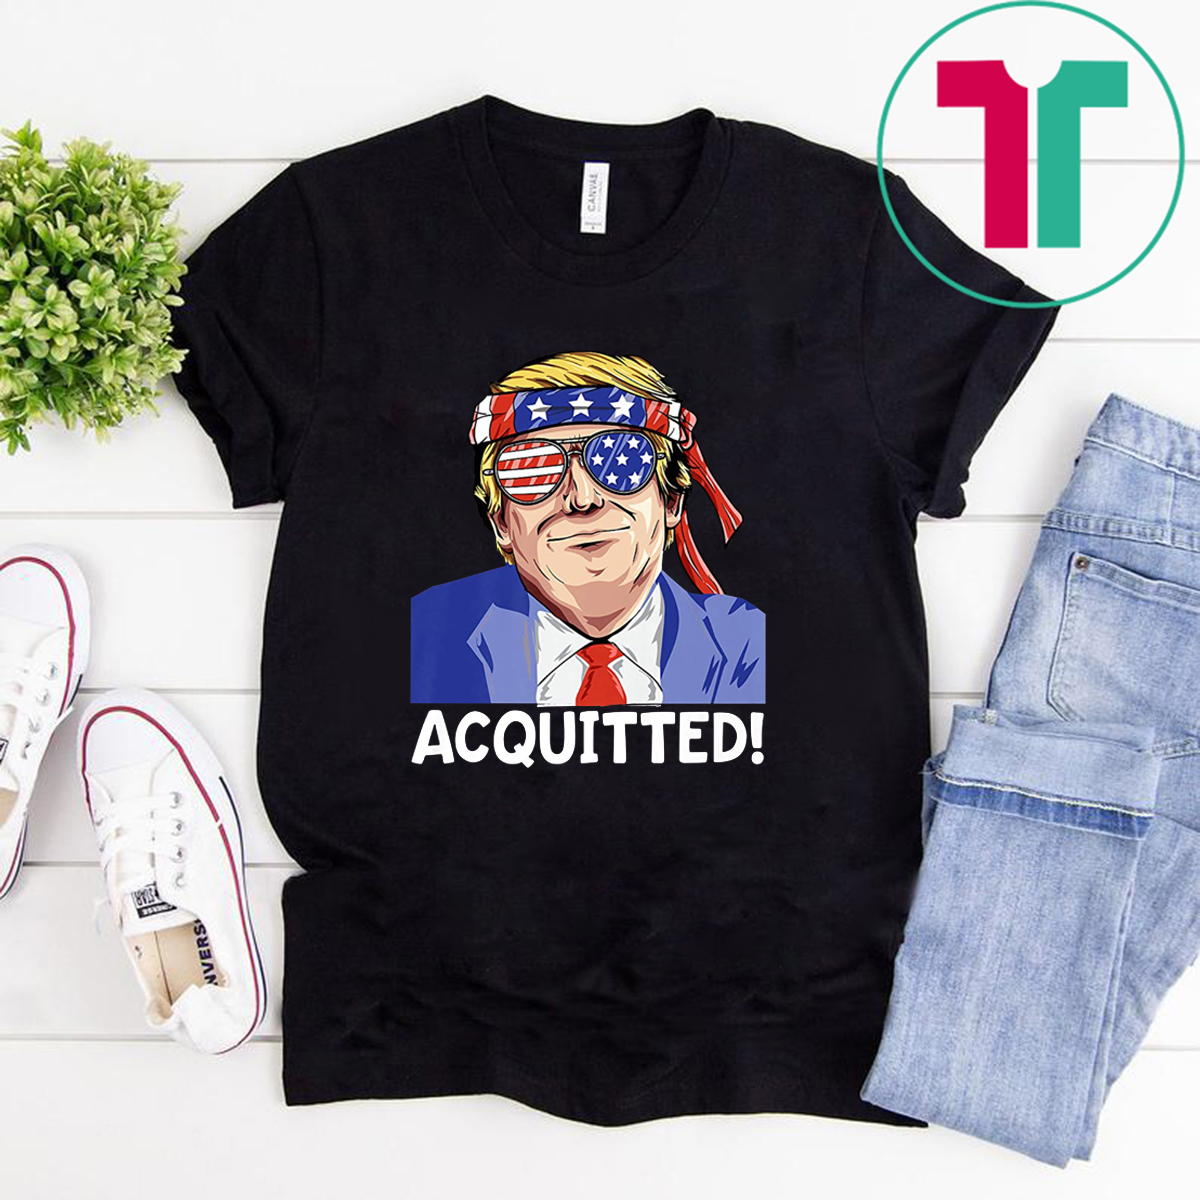 President Trump Acquitted Pro Republican T-Shirt